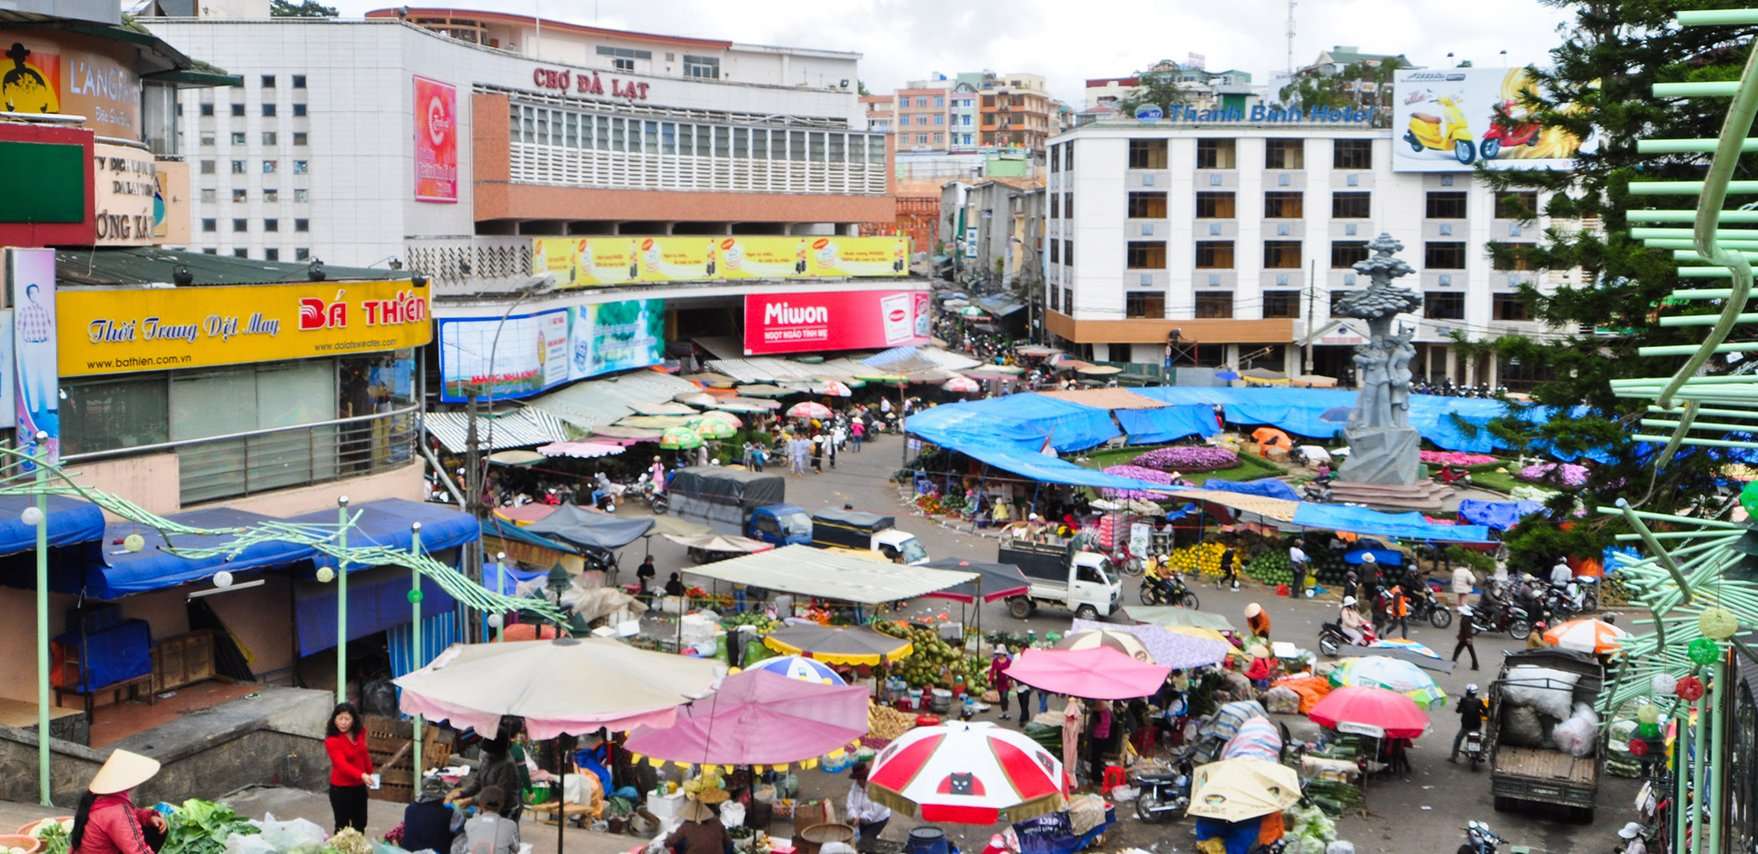 Go for Regional Shopping at Dalat Market